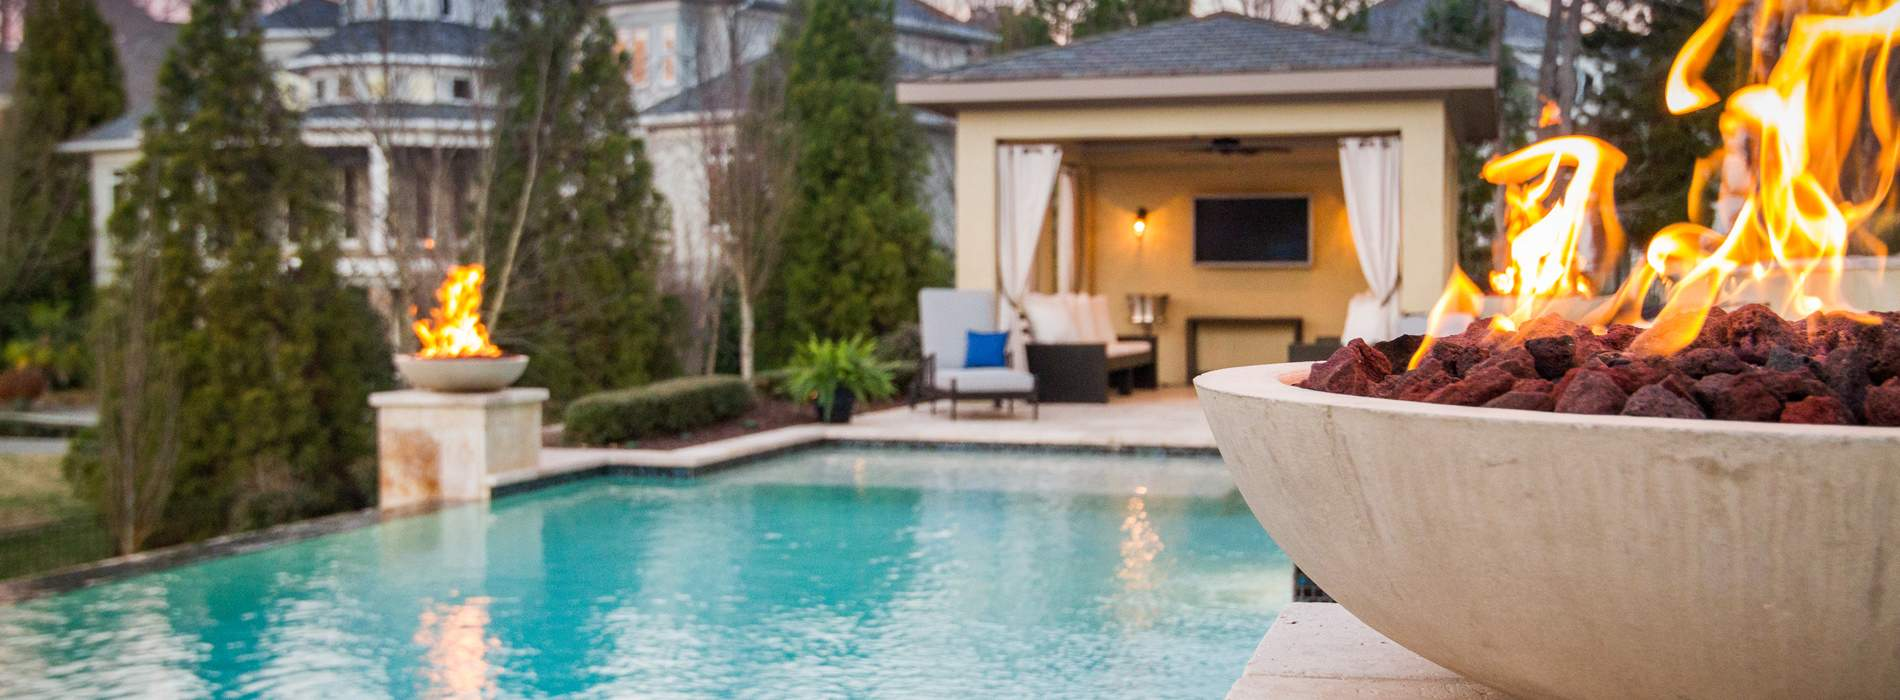 Landscape Design Inground Pools Construction Charlotte Nc